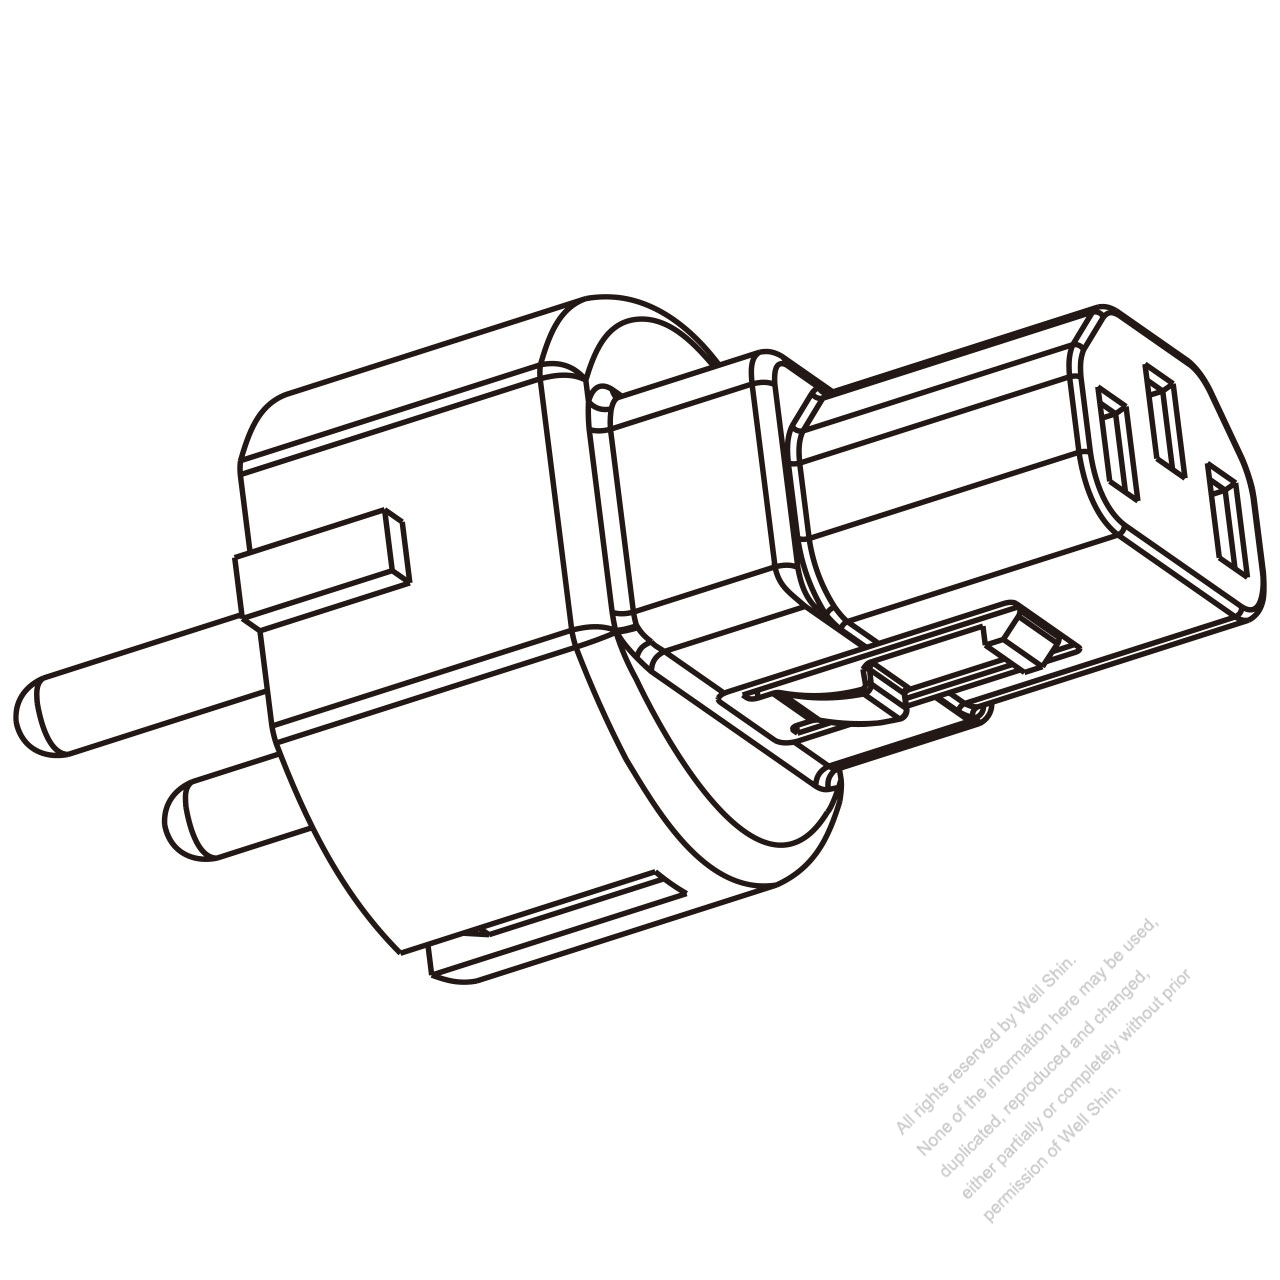 Adapter Plug Israel Type To Iec 320 C13 Female Connector